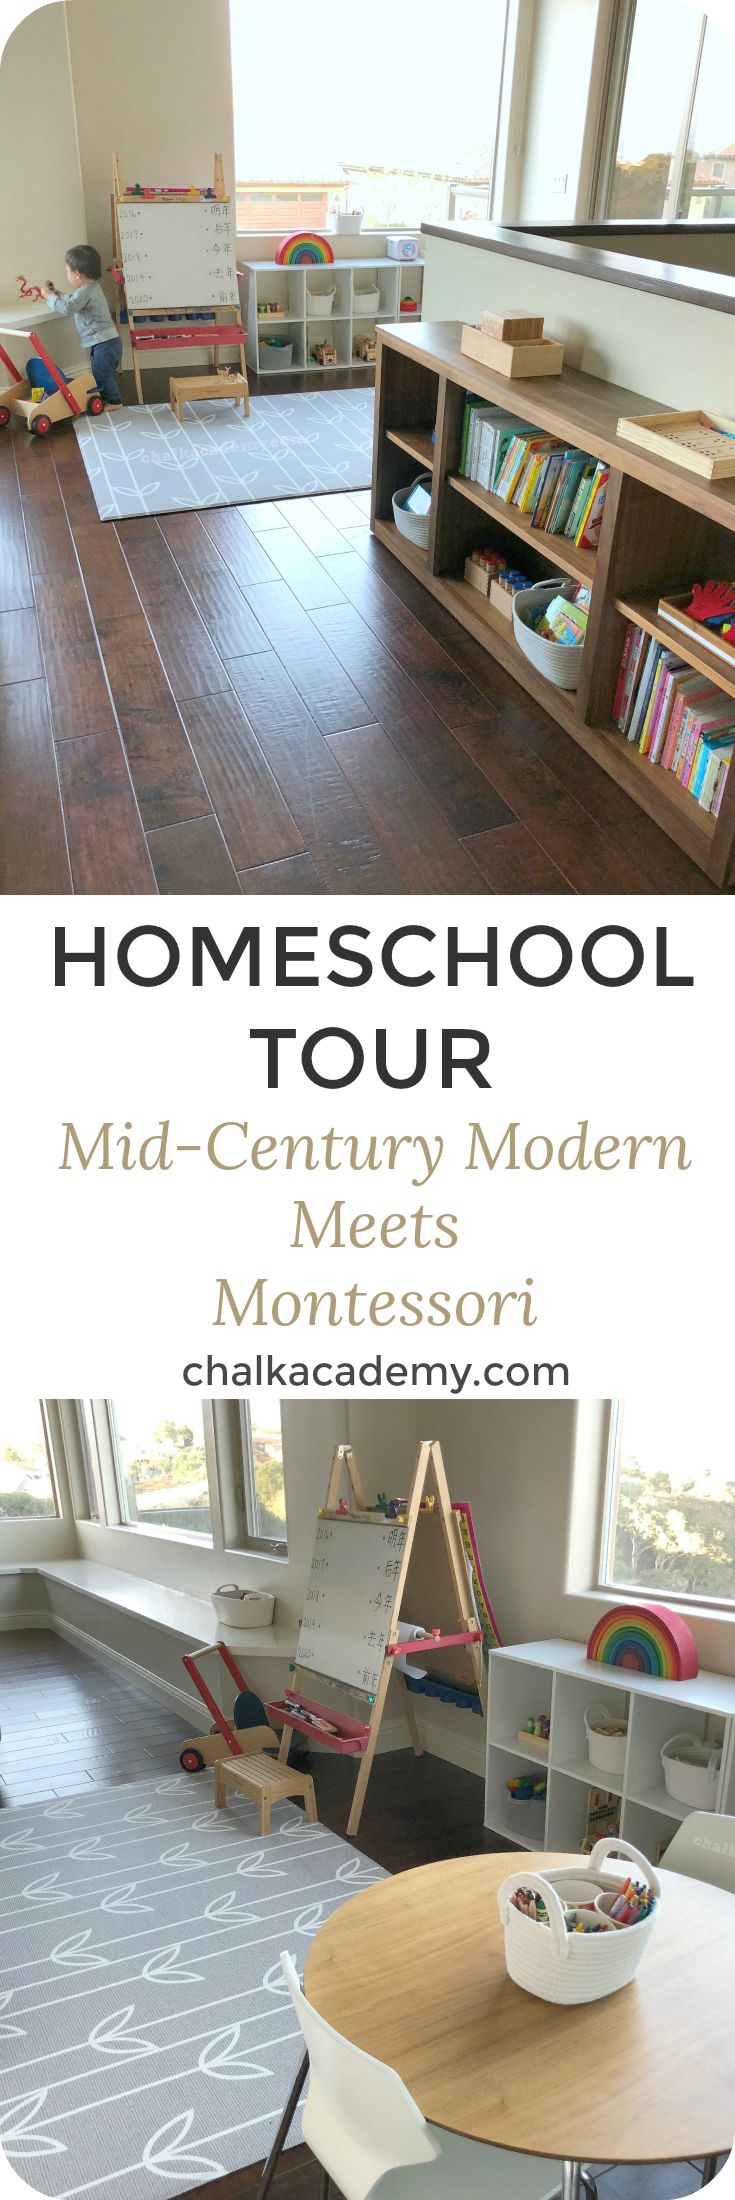 Homeschool Tour: Mid-Century Modern Meets Montessori; Open-concept living space | Shared playroom | Minimalist | Kon Mari | Preschool | Classroom | Prepared environment | Practical Life Skills | Playroom | Play area | Room & Board furniture